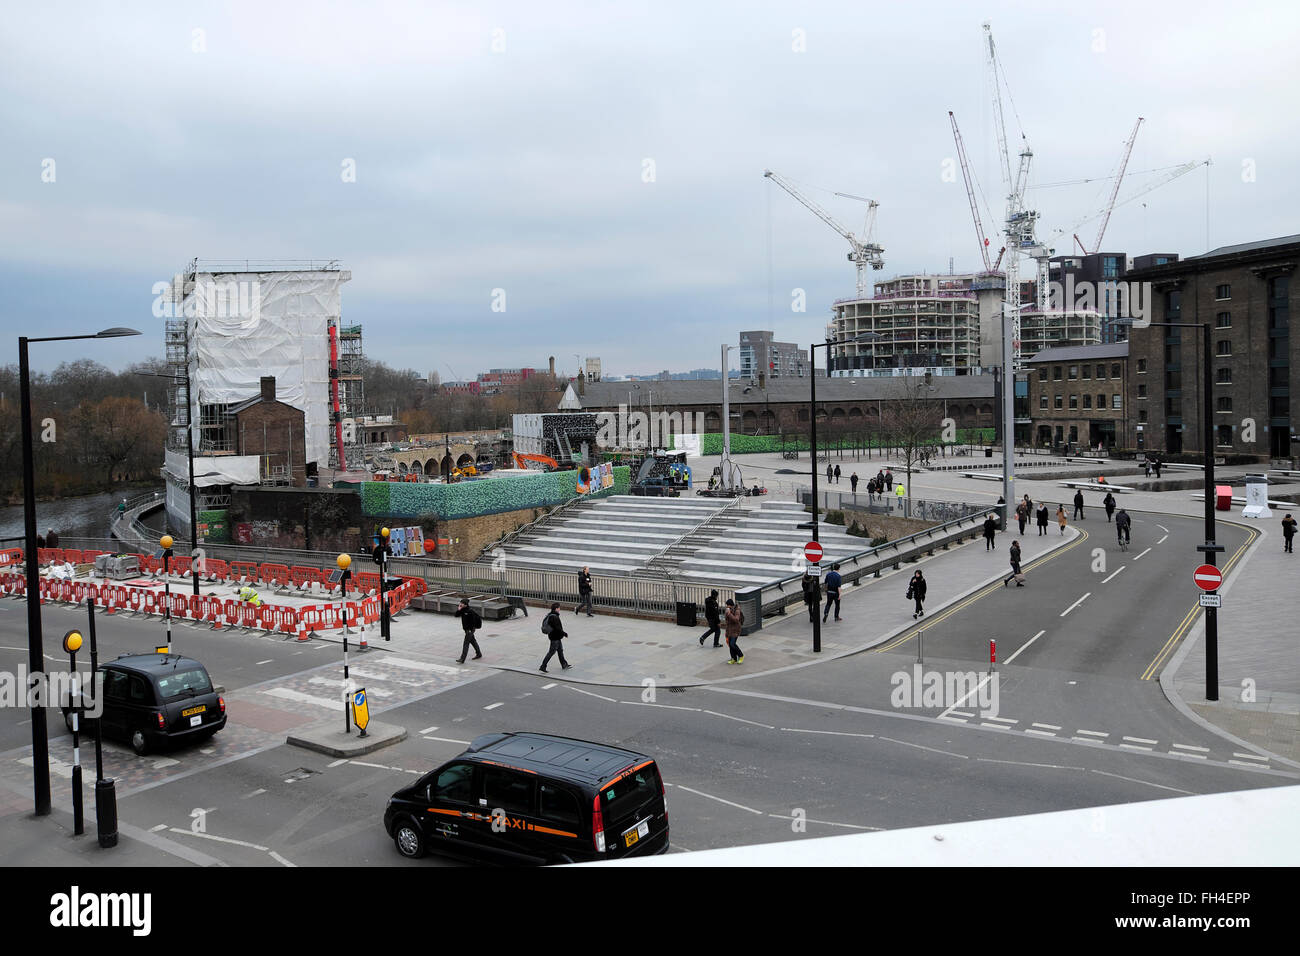 View of Granary Square, Gasholder Apartments and Plimsoll Building cranes King's Cross Regeneration London UK - Stock Image